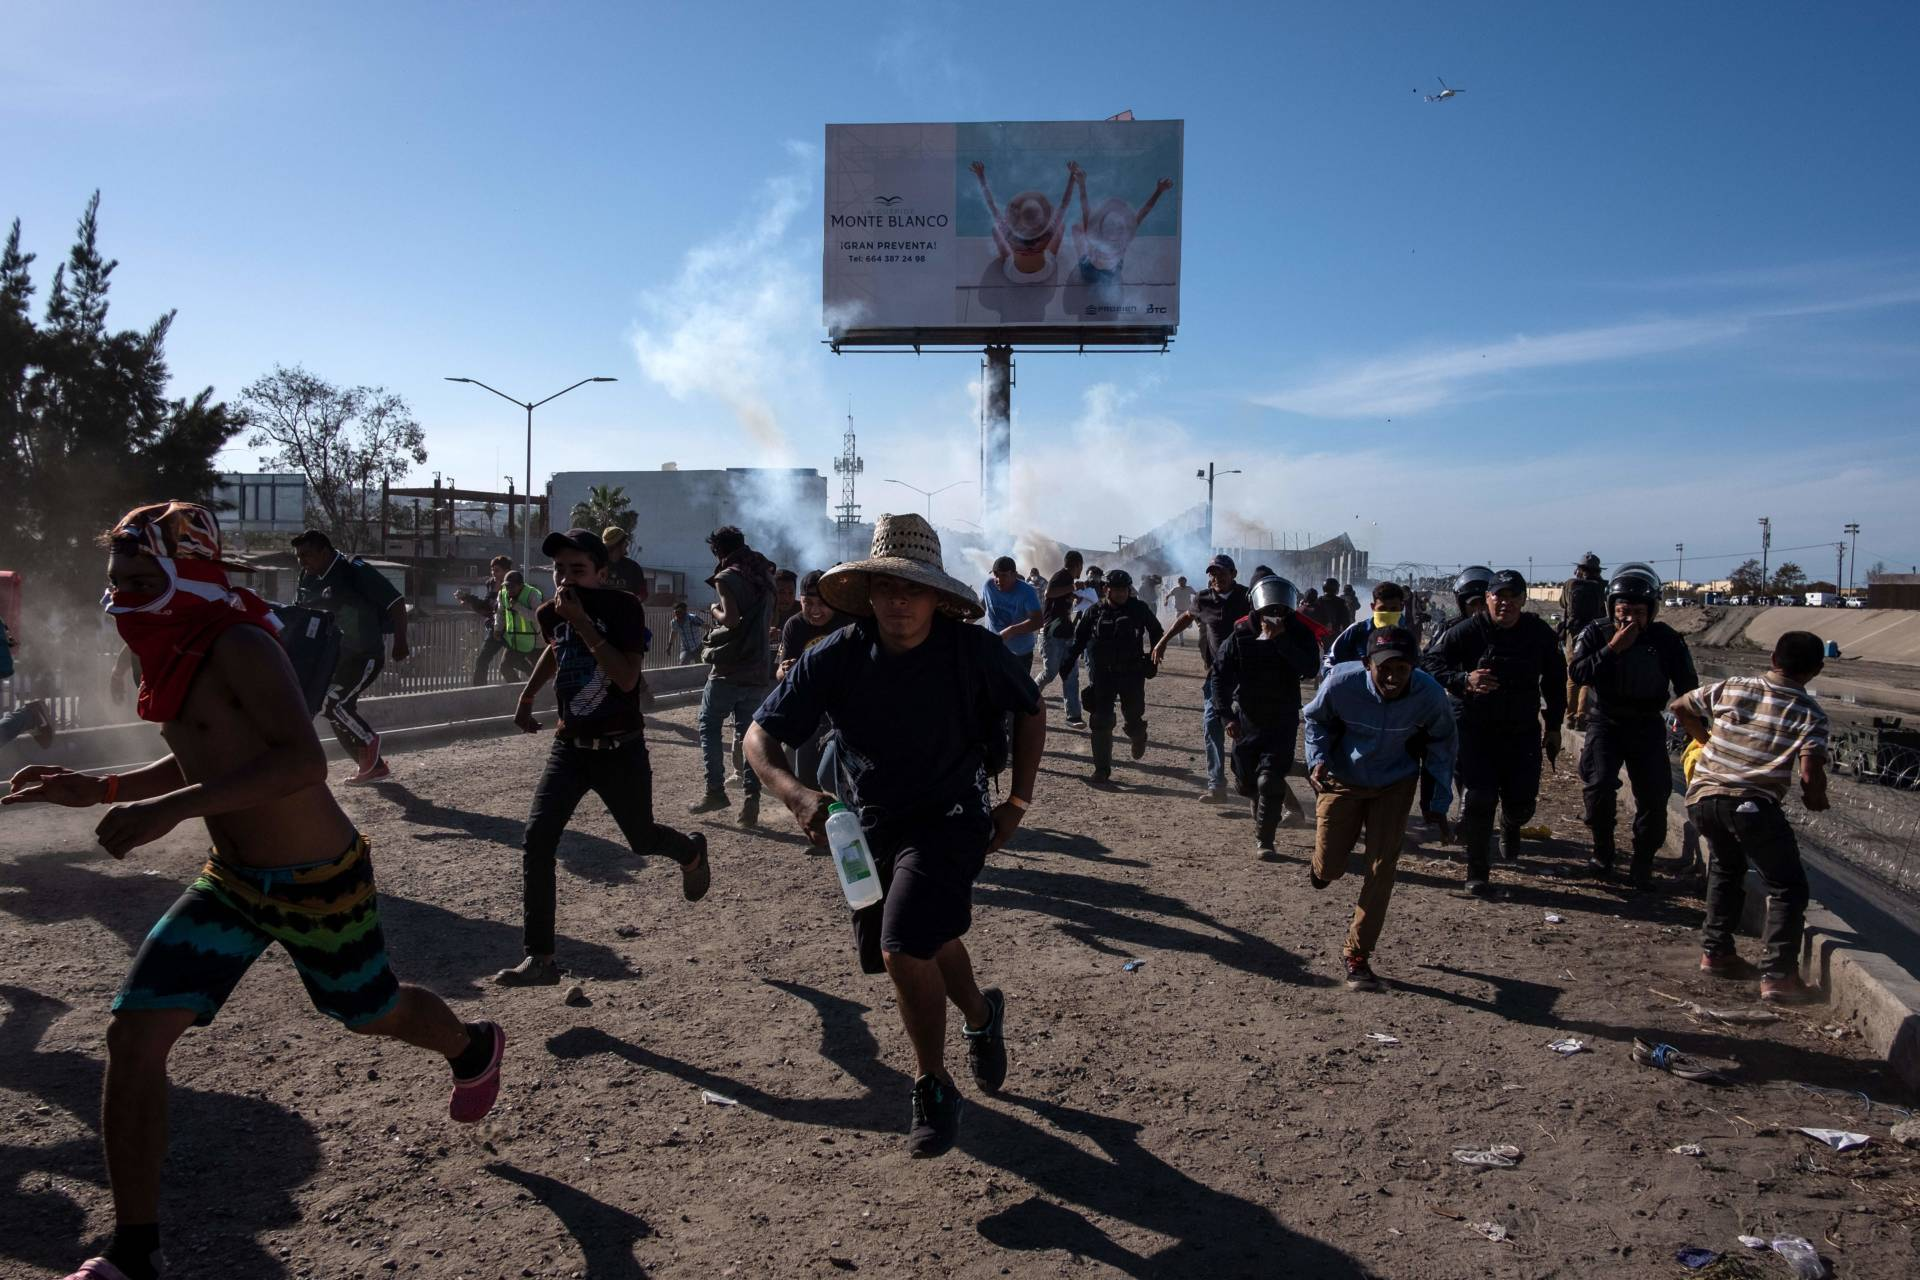 Central American migrants, mostly Hondurans, run along the Tijuana River near the El Chaparral border crossing after U.S. border agents threw tear gas from a distance to disperse them after an alleged verbal dispute on Nov. 25, 2018. Guillermo Arias/AFP/Getty Images